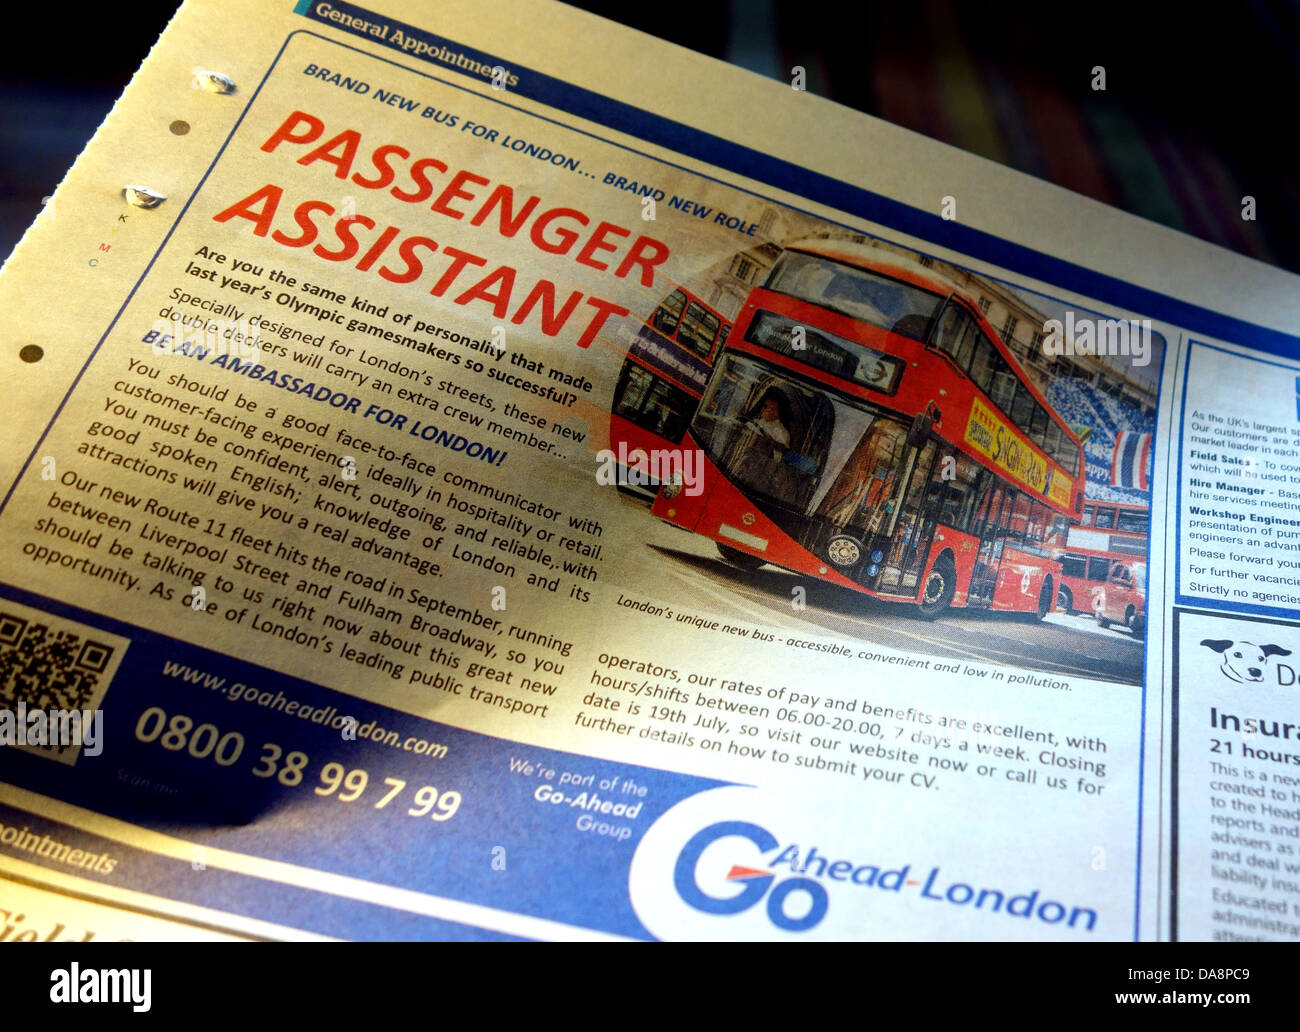 Newspaper advert for Passenger Assistants for new ' Routemaster' buses, London - Stock Image